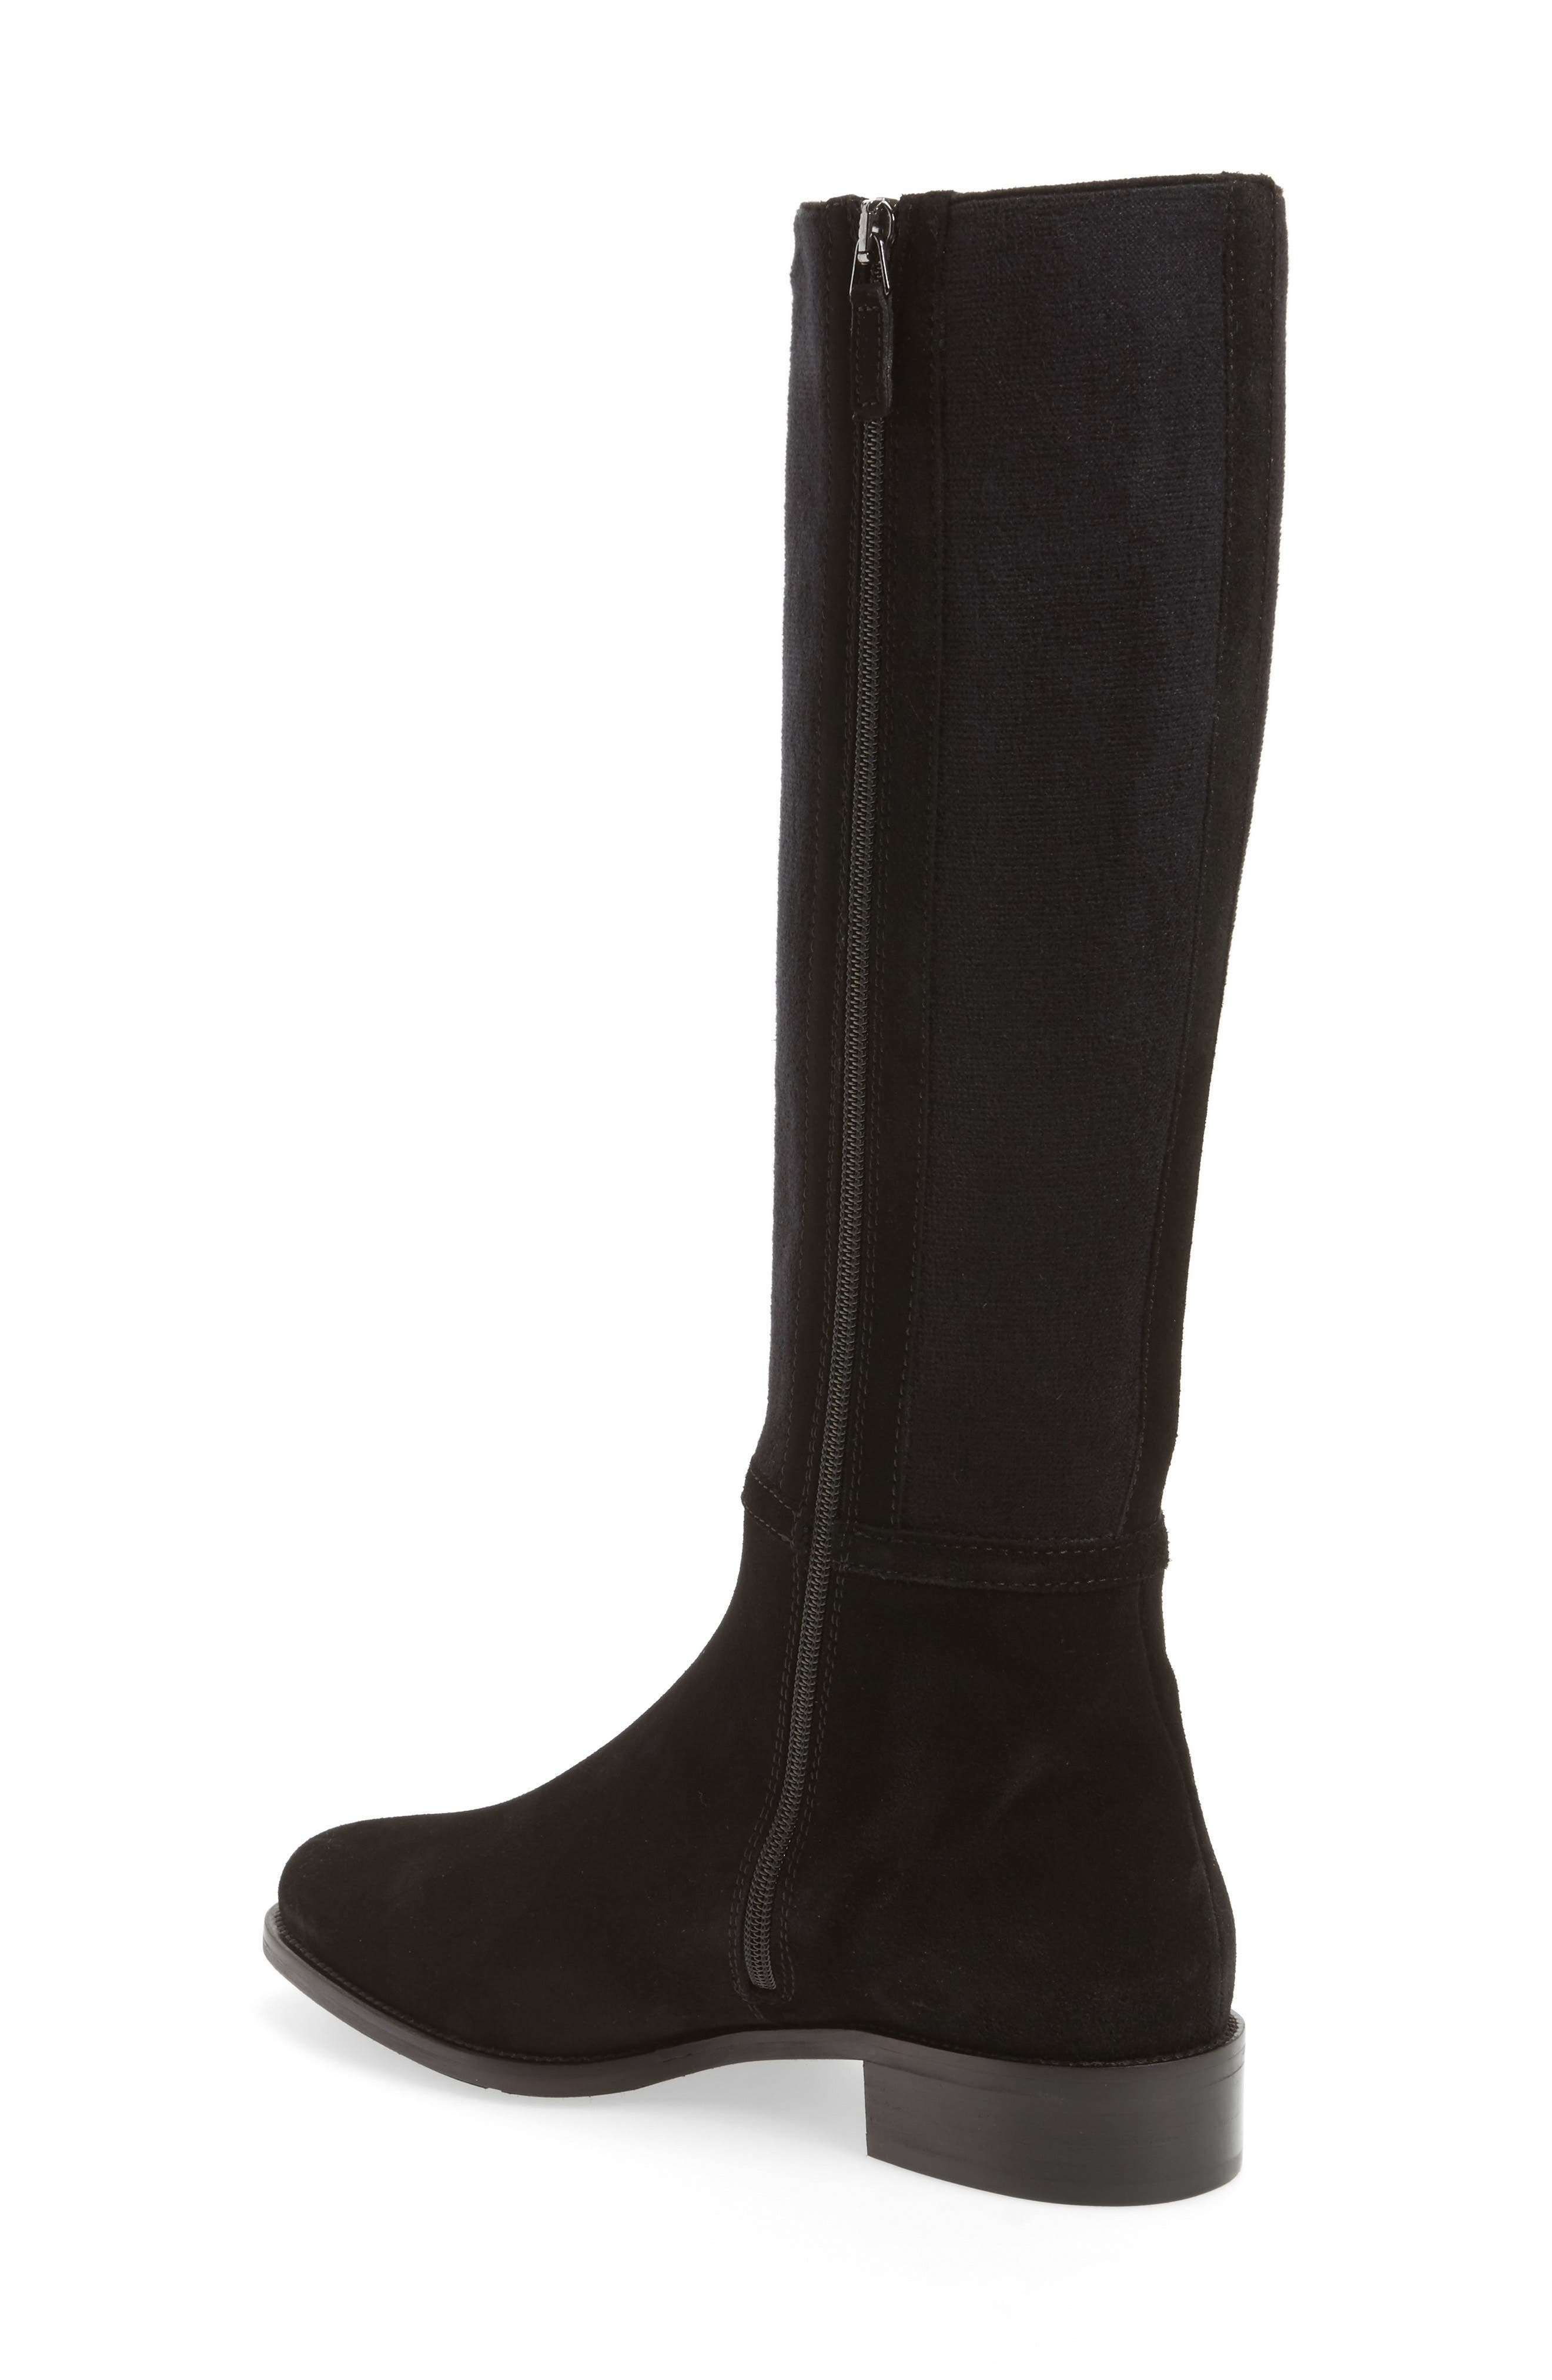 Nicolette Knee High Weatherproof Boot,                             Alternate thumbnail 2, color,                             001